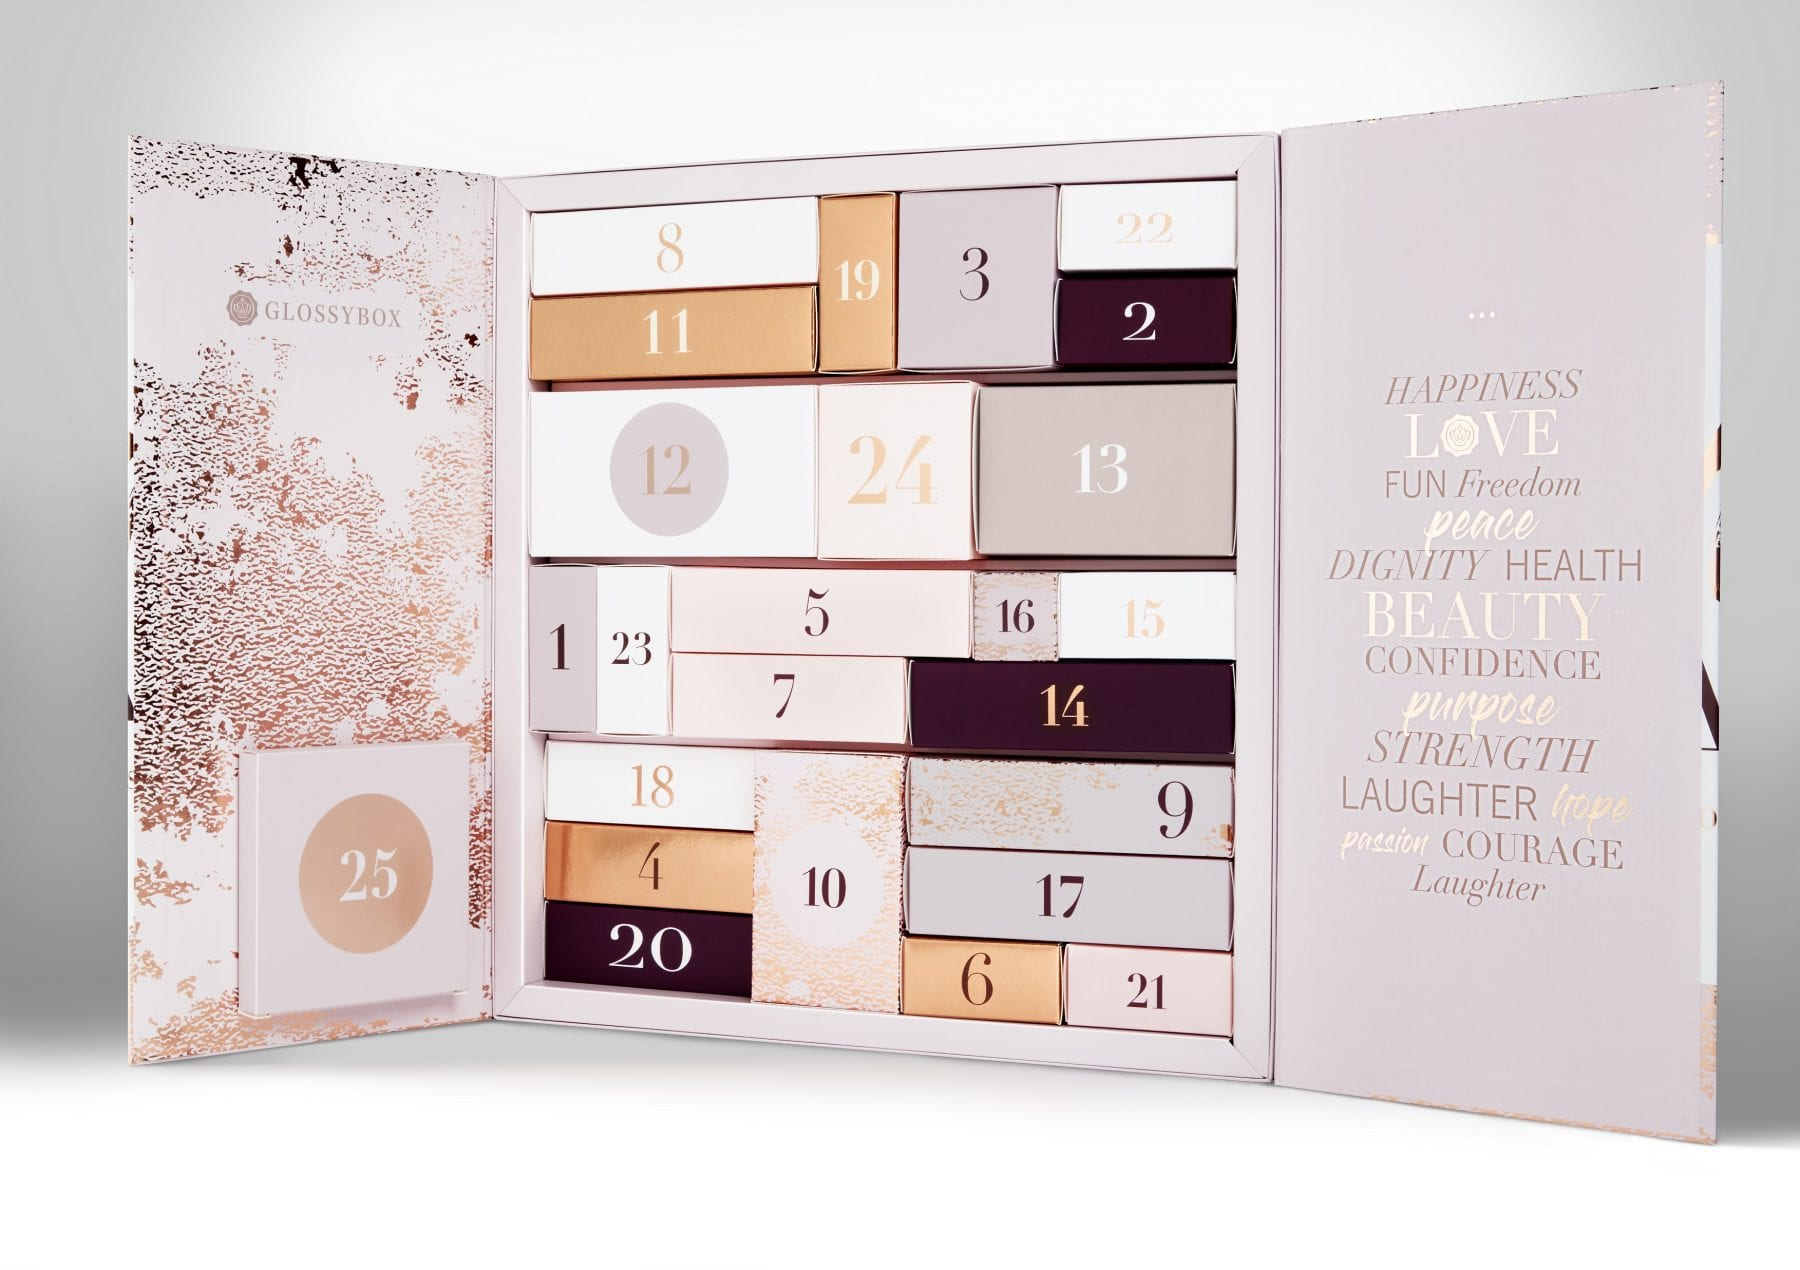 GLOSSYBOX Advent Calendar 2018 Open